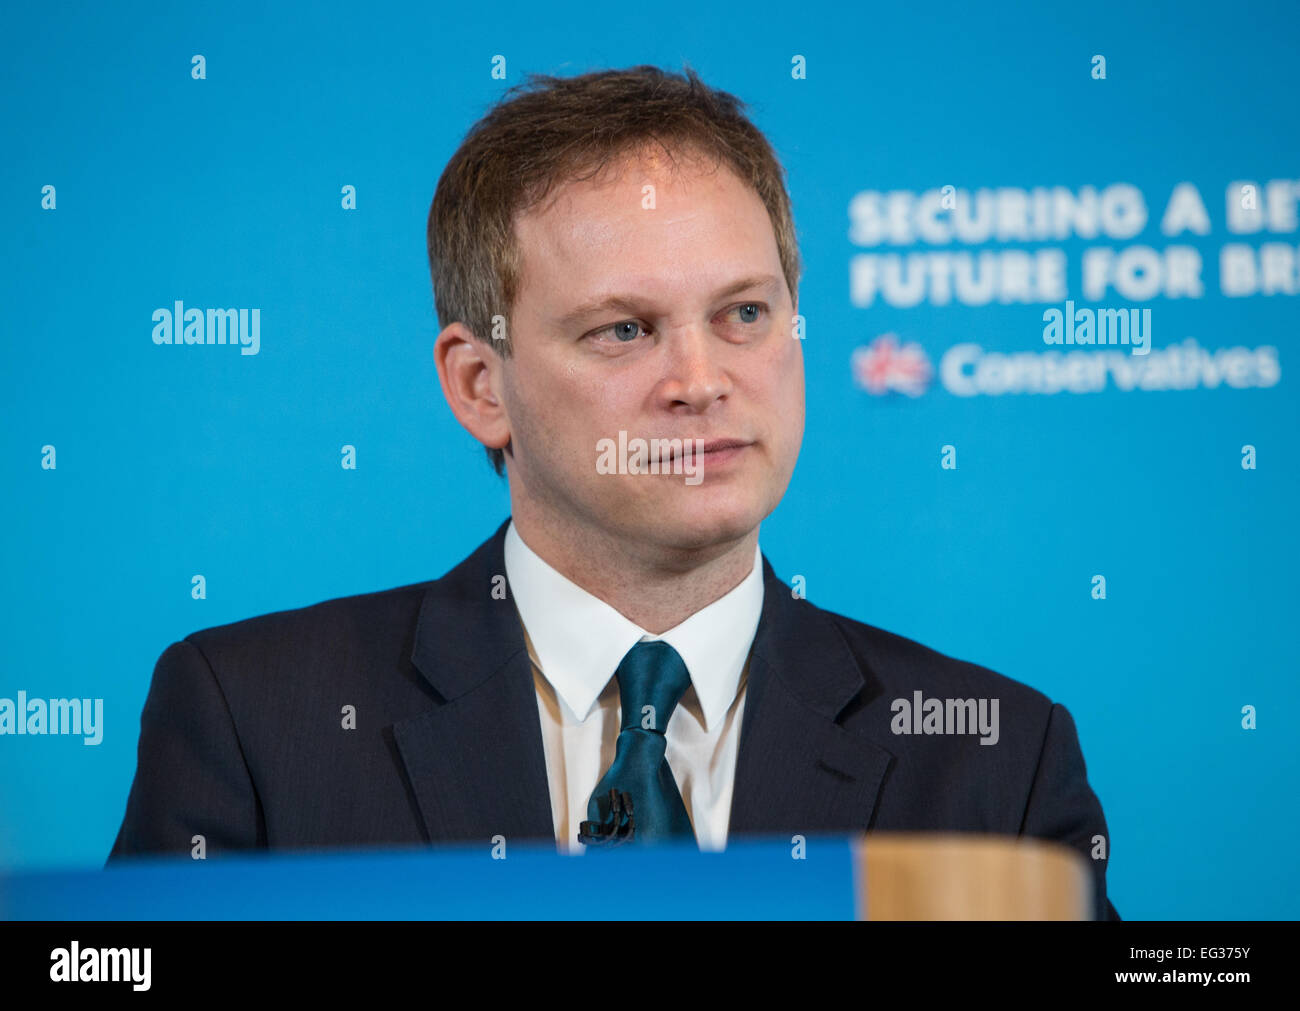 Grant Schapps Chairman of the Conservative party gives a press conference - Stock Image